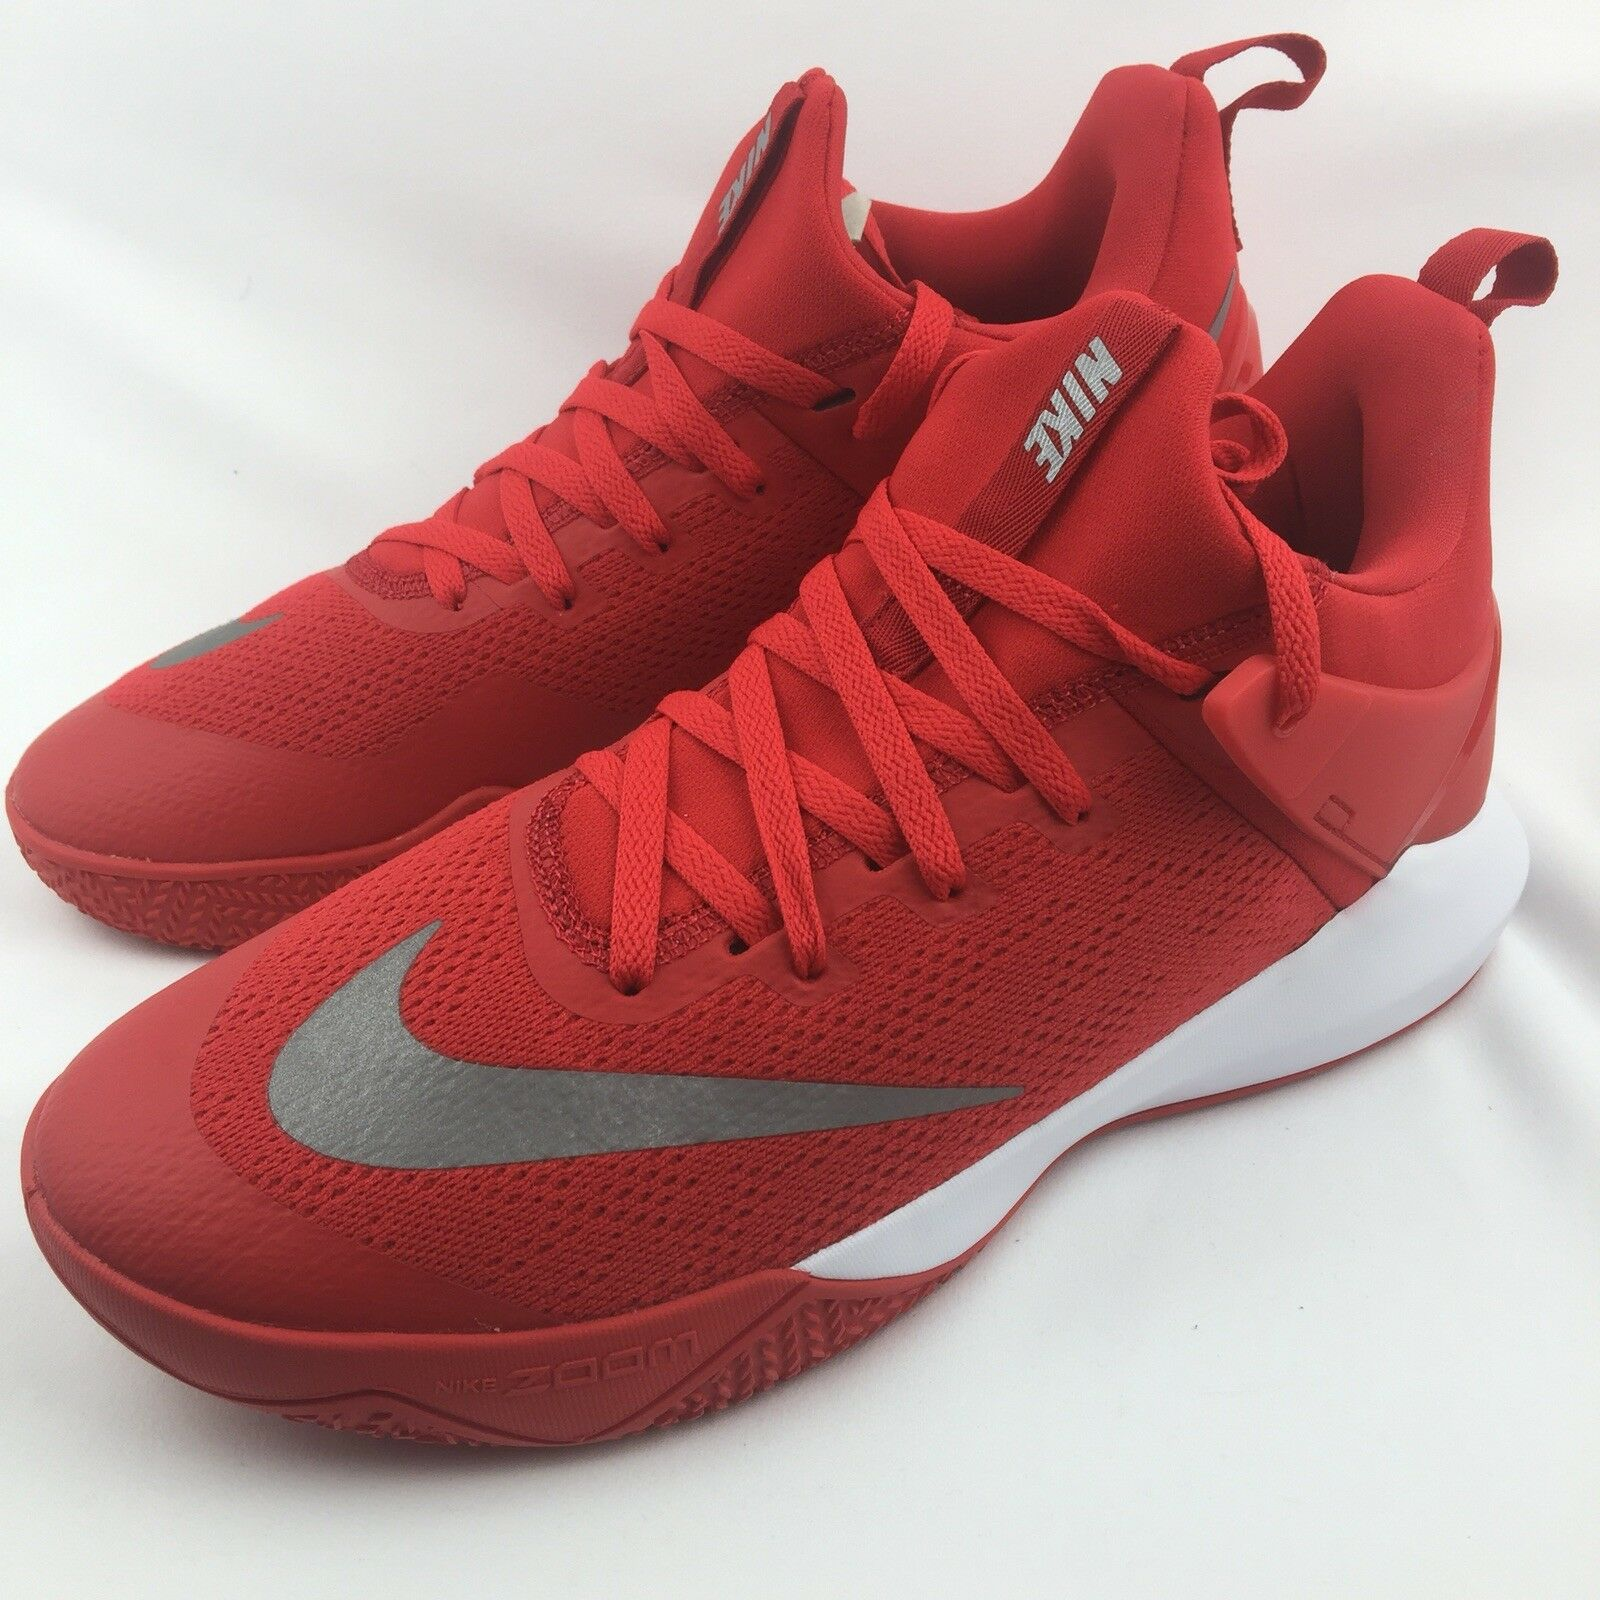 Nike Zoom Shift TB Size 10 Basketball Sneakers 897811-600